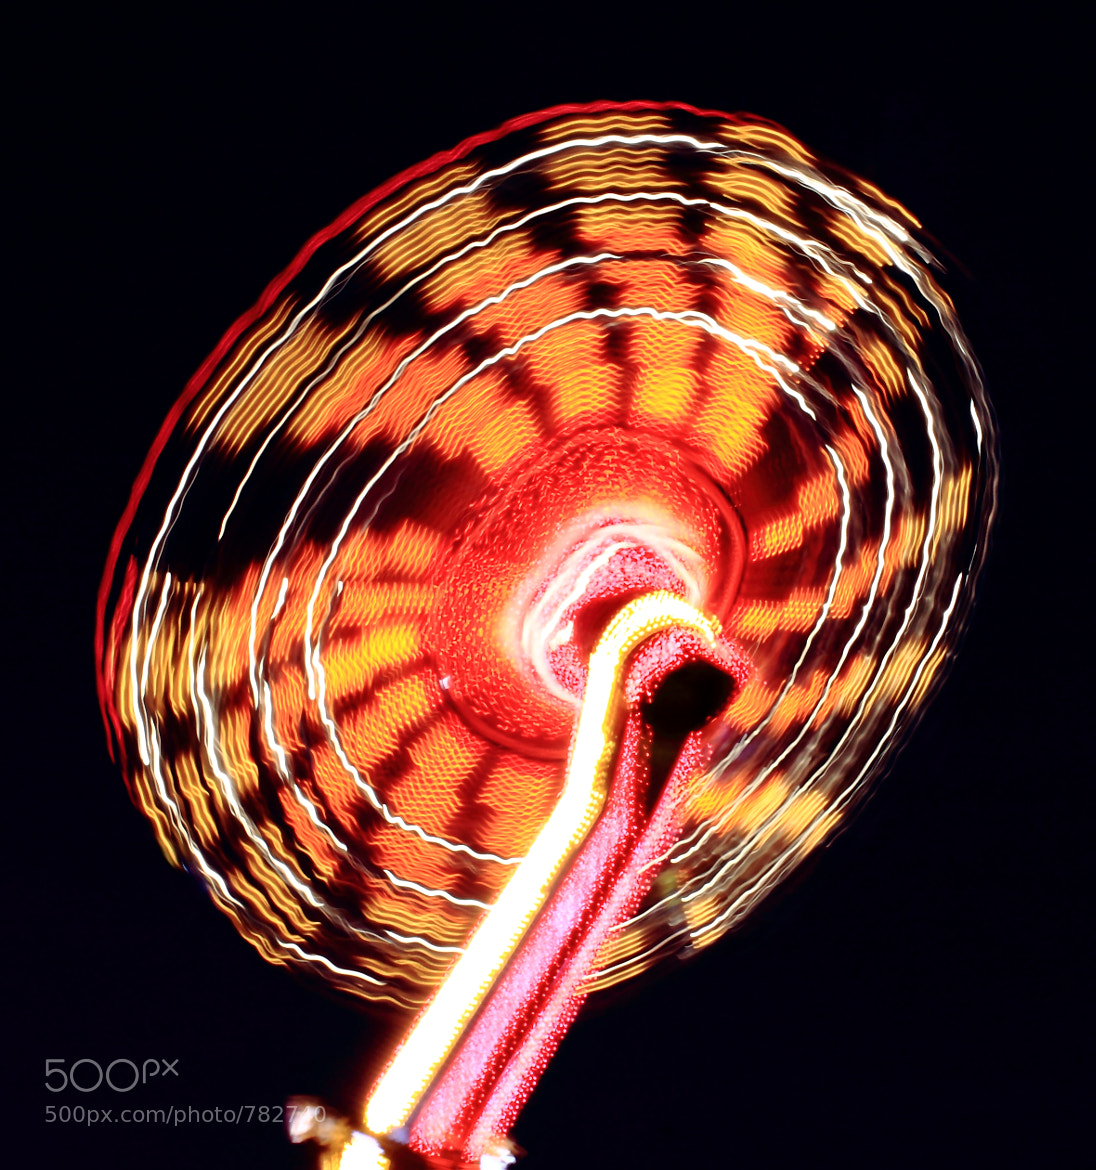 Photograph St Giles Fair by Jay Rajamanickam on 500px